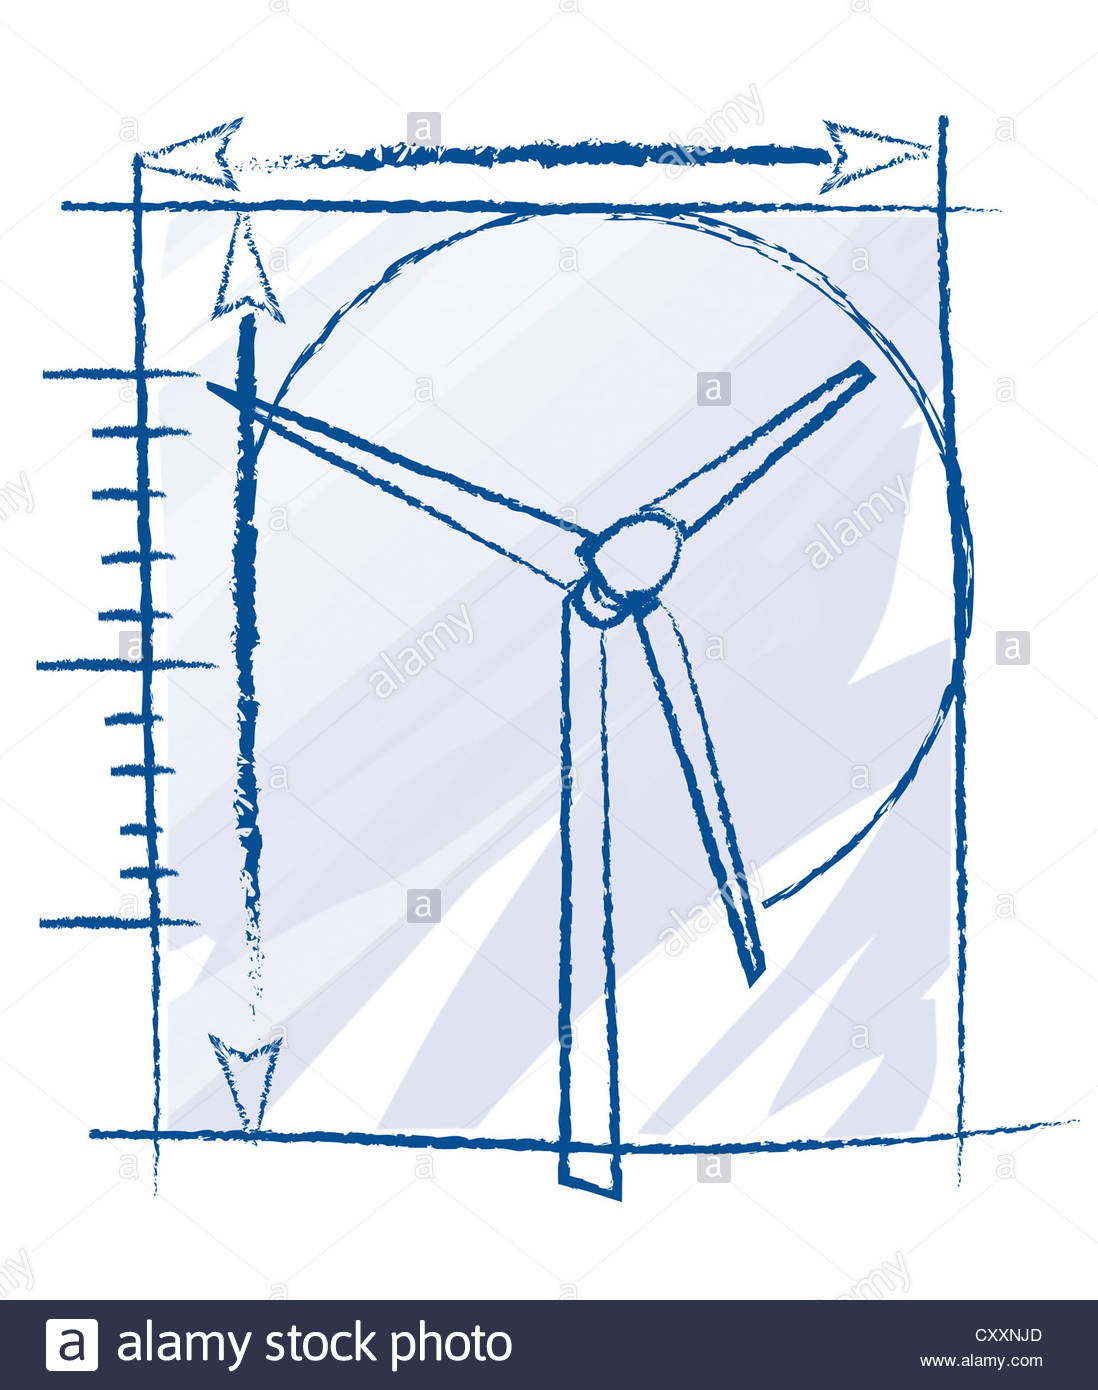 1098x1390 Illustration, Technical Drawing Of A Wind Turbine Stock Photo